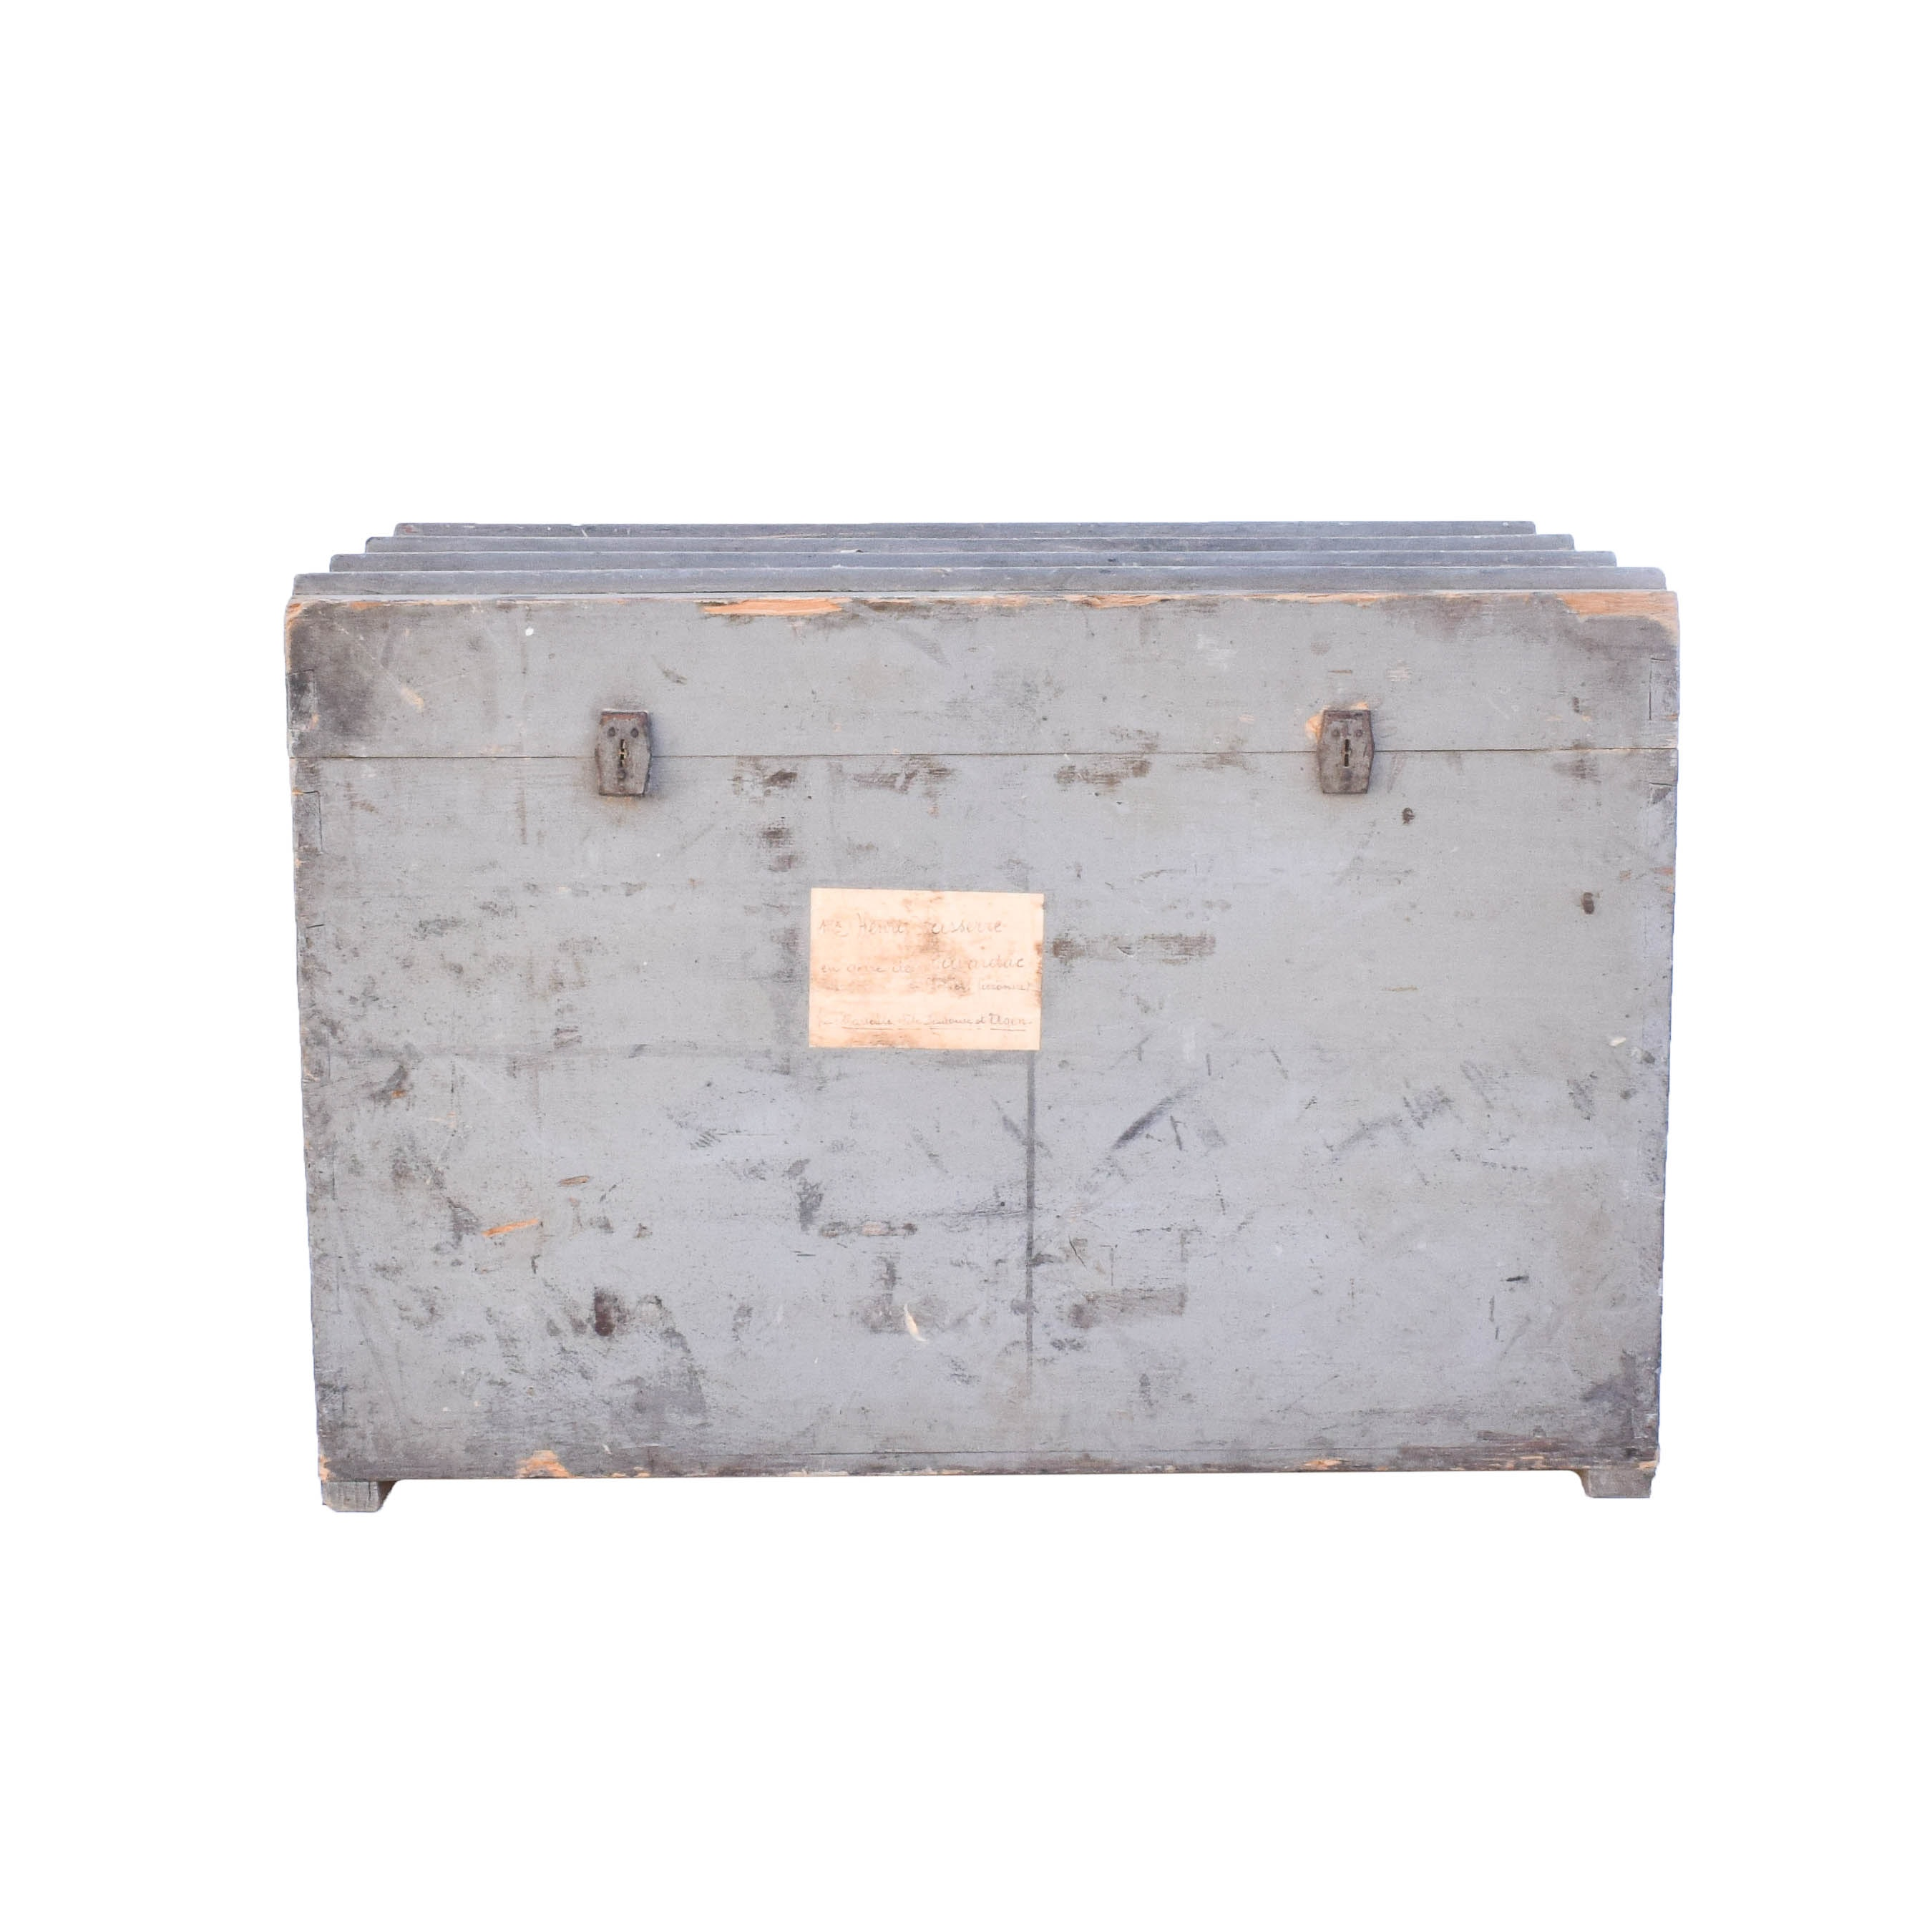 Antique French Colonial Steam Trunk